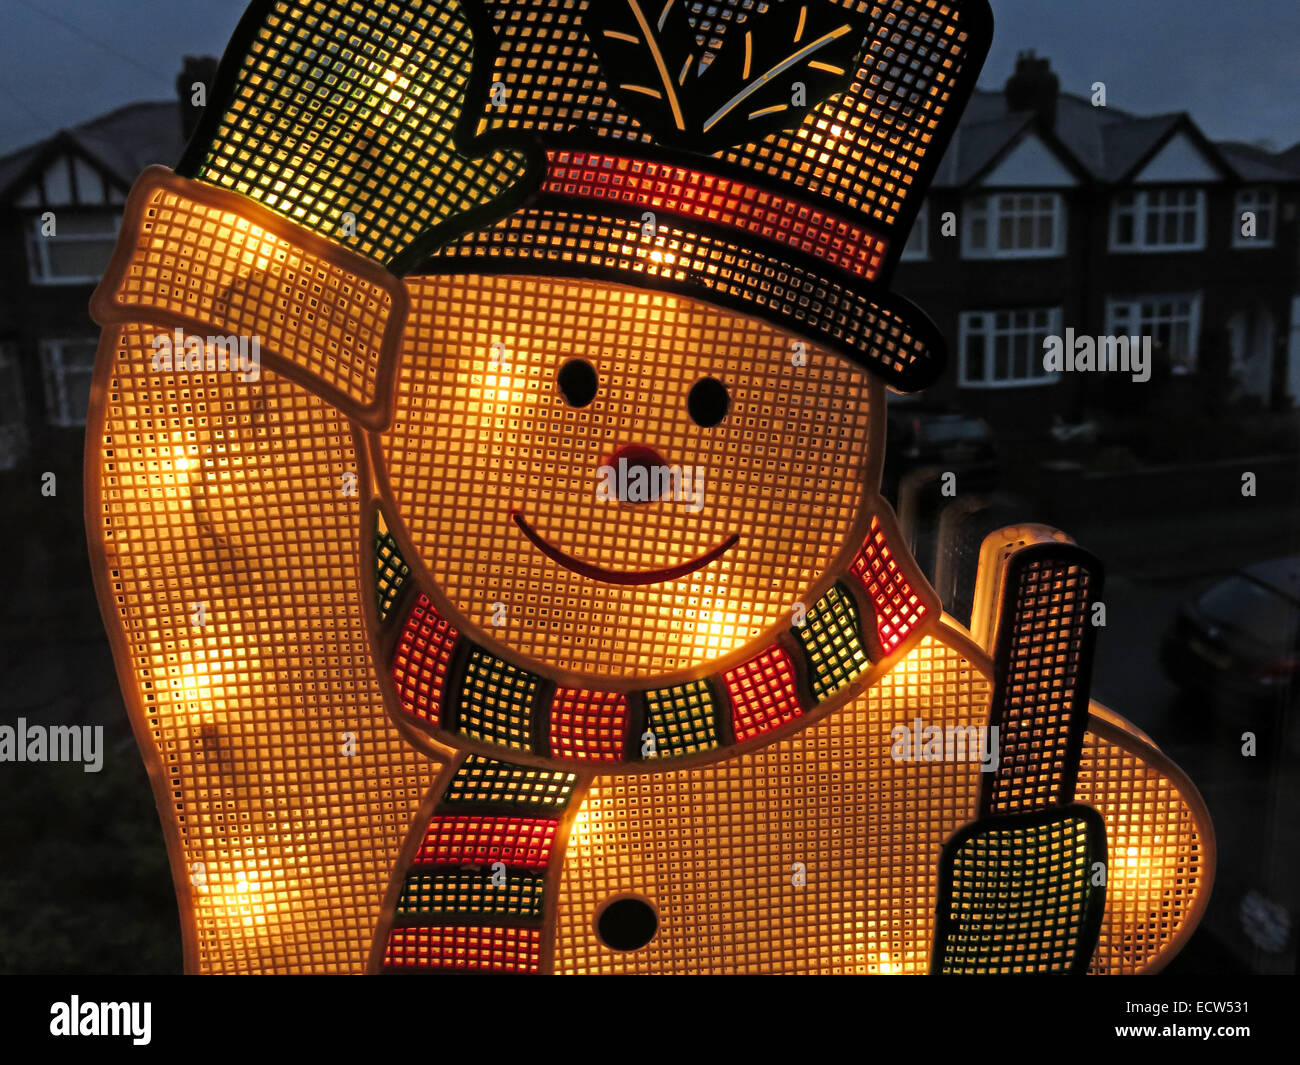 christmas,xmas,lighted,light,bulb,tungsten,waving,waves,plastic,novelty,friendly,fun,orange,at,night,dusk,dawn,blue,sky,behind,December,novel,indoor,Static,lighting,effect,yellow,bulb,type,fun,time,with,this,acrylic,festive,cheer,in,the,home,house,decoration,GoTonySmith,Buy Pictures of,Buy Images Of